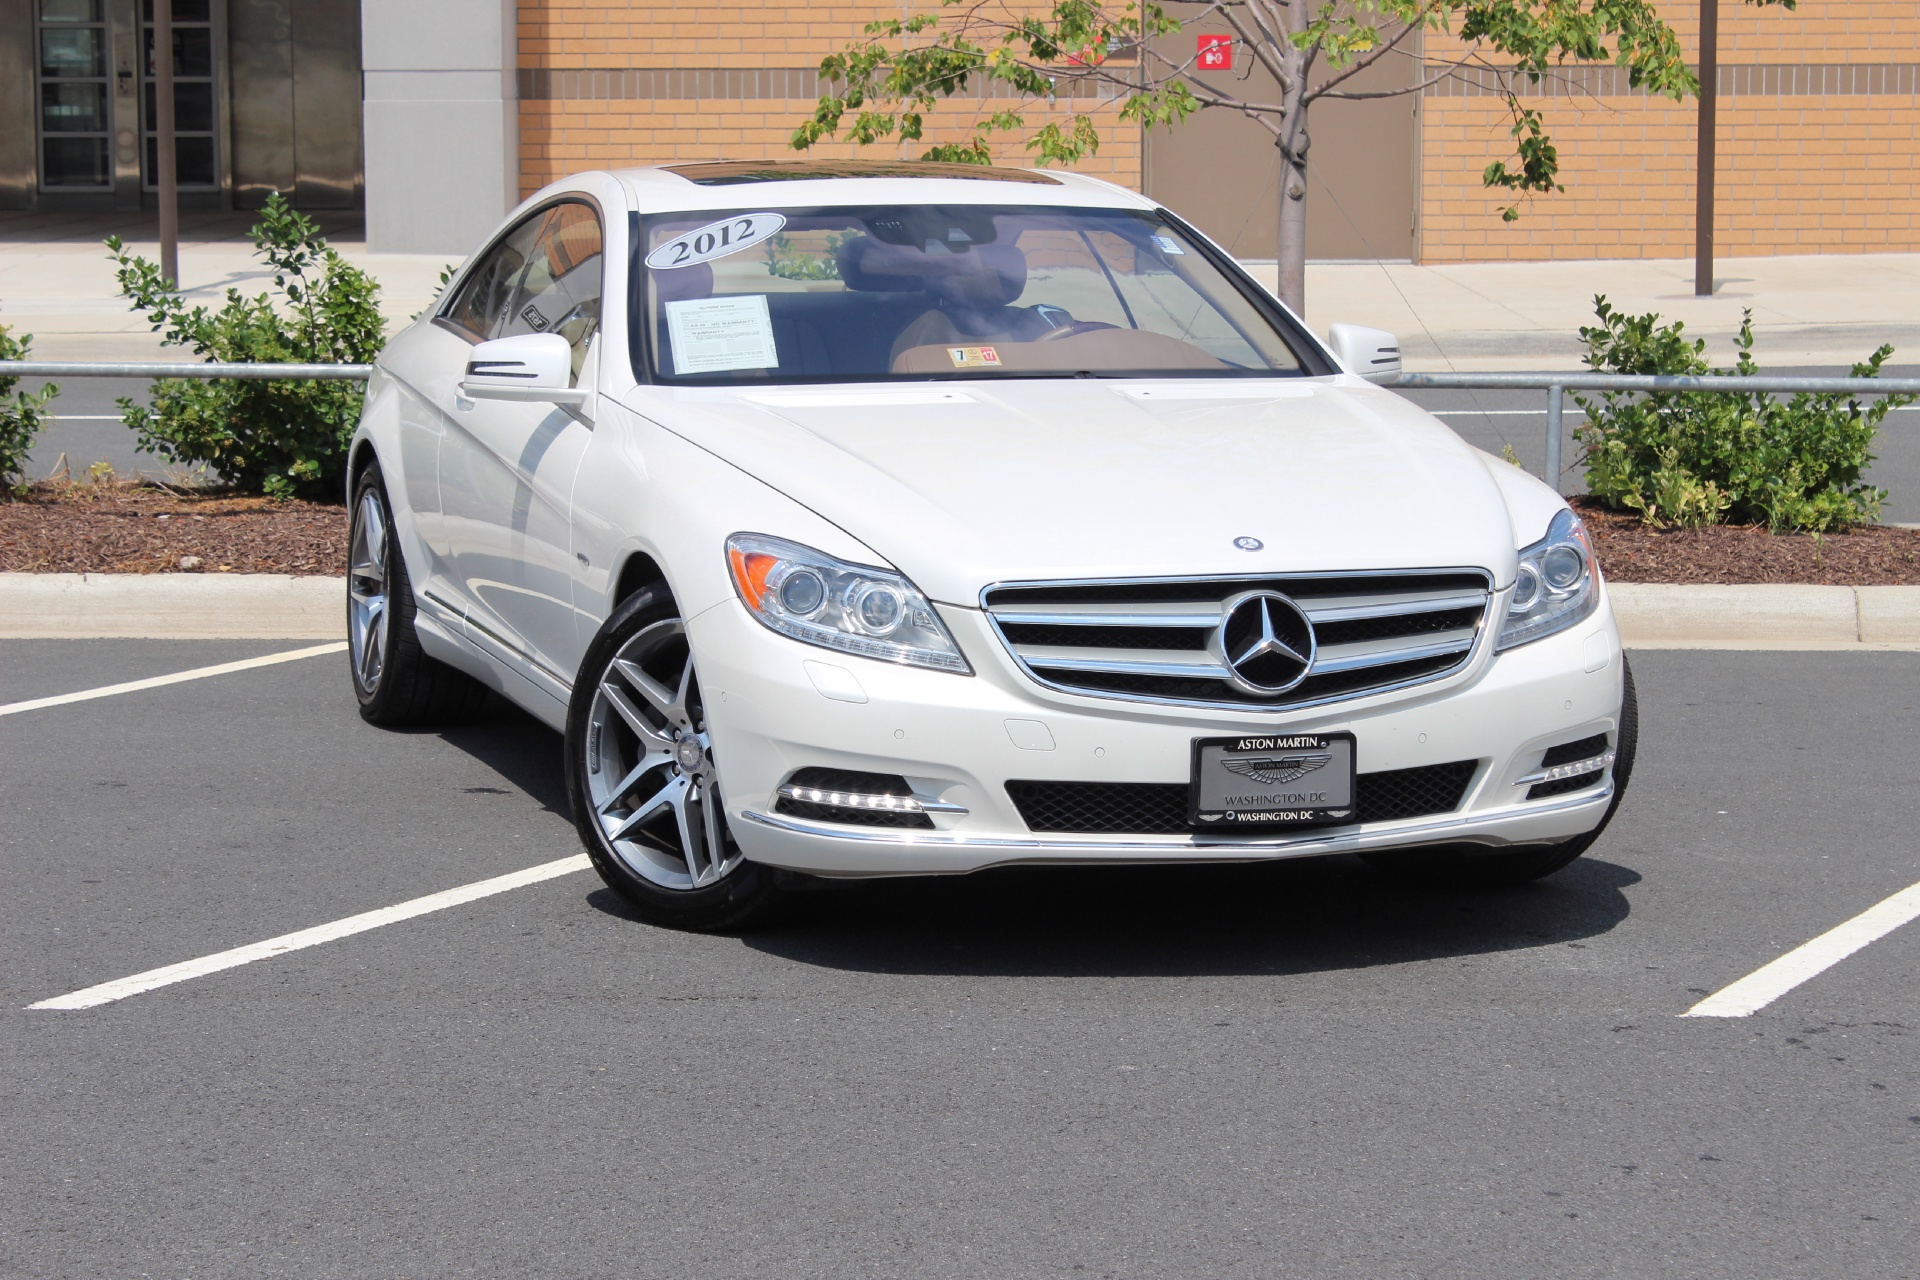 2012 mercedes benz cl class cl550 4matic stock p079423a for Mercedes benz dealer in va